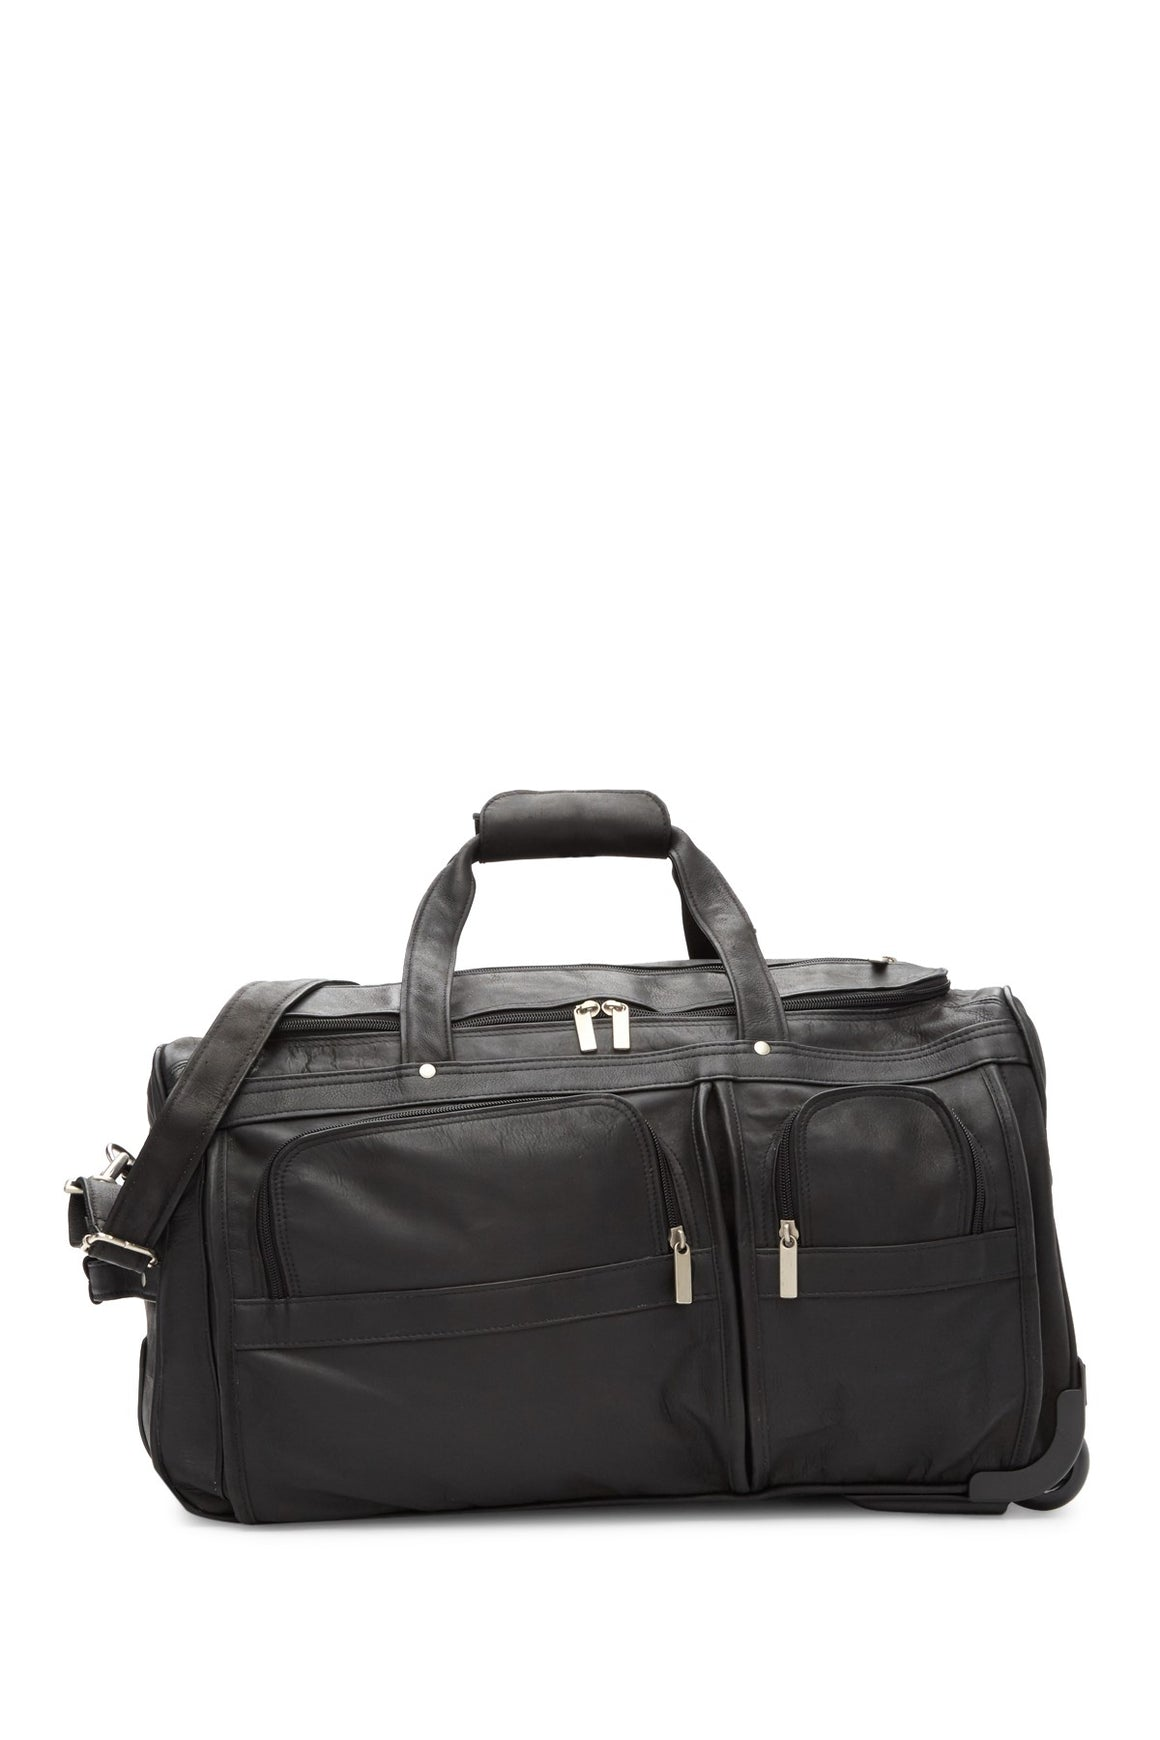 David King 20 Wheeled Duffel Cognac